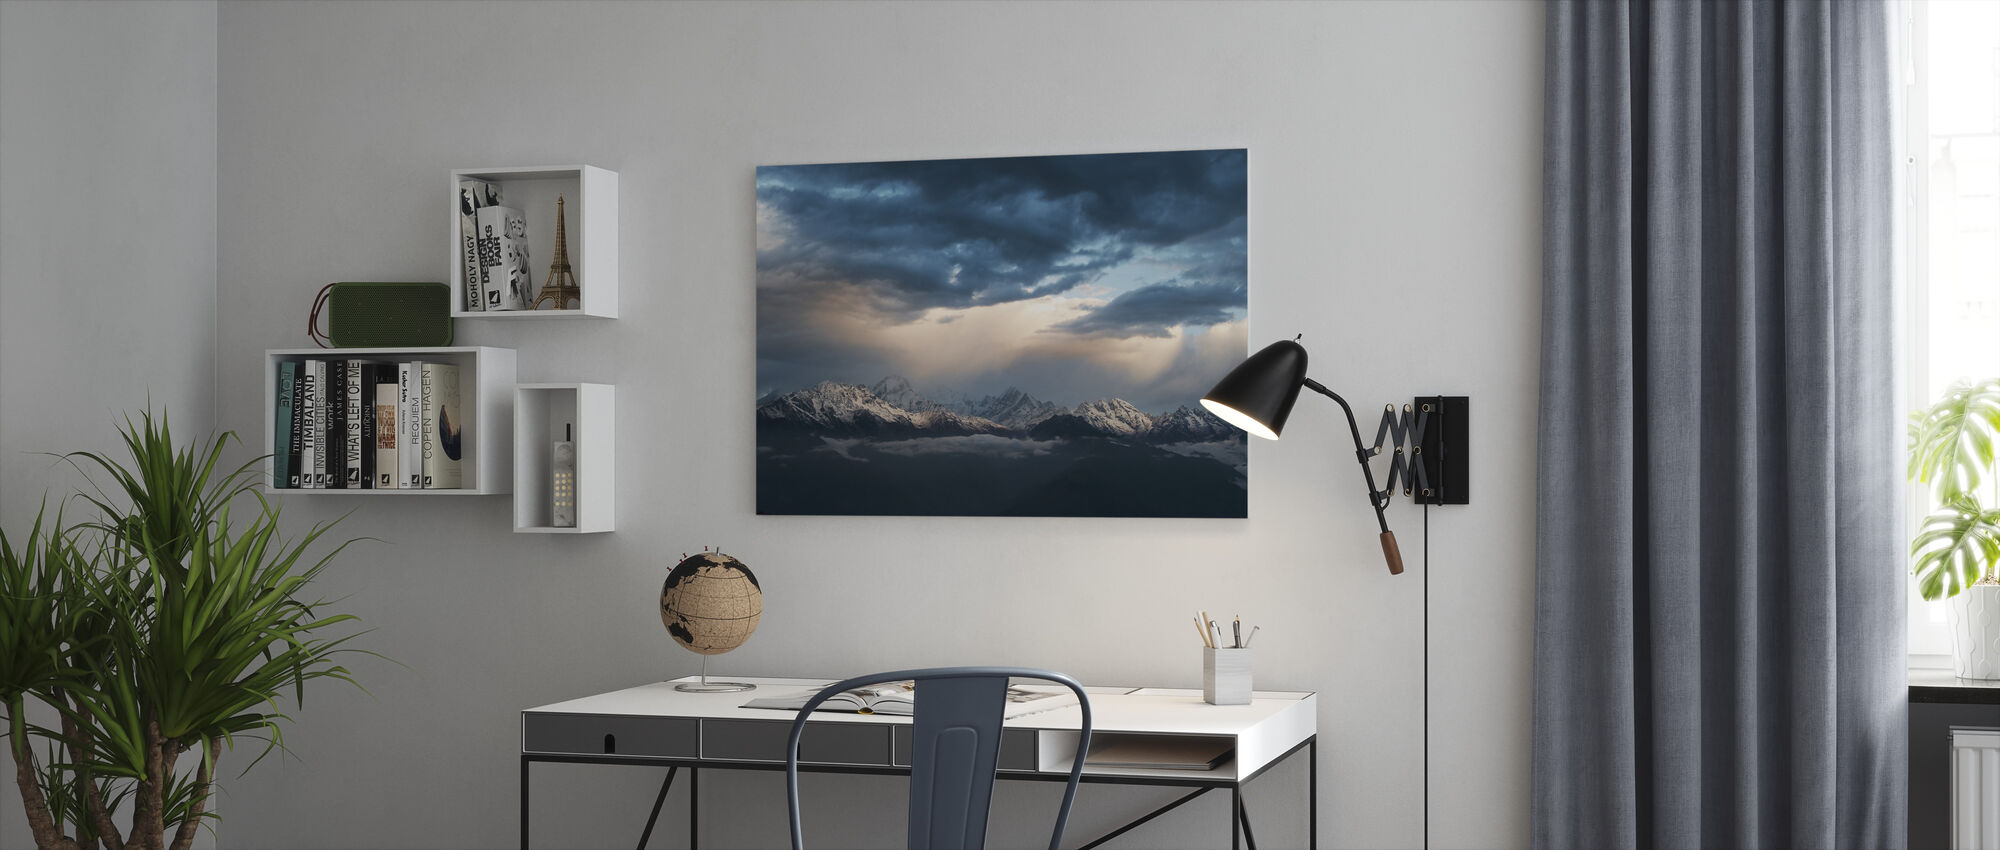 Lights and Motion - Canvas print - Office